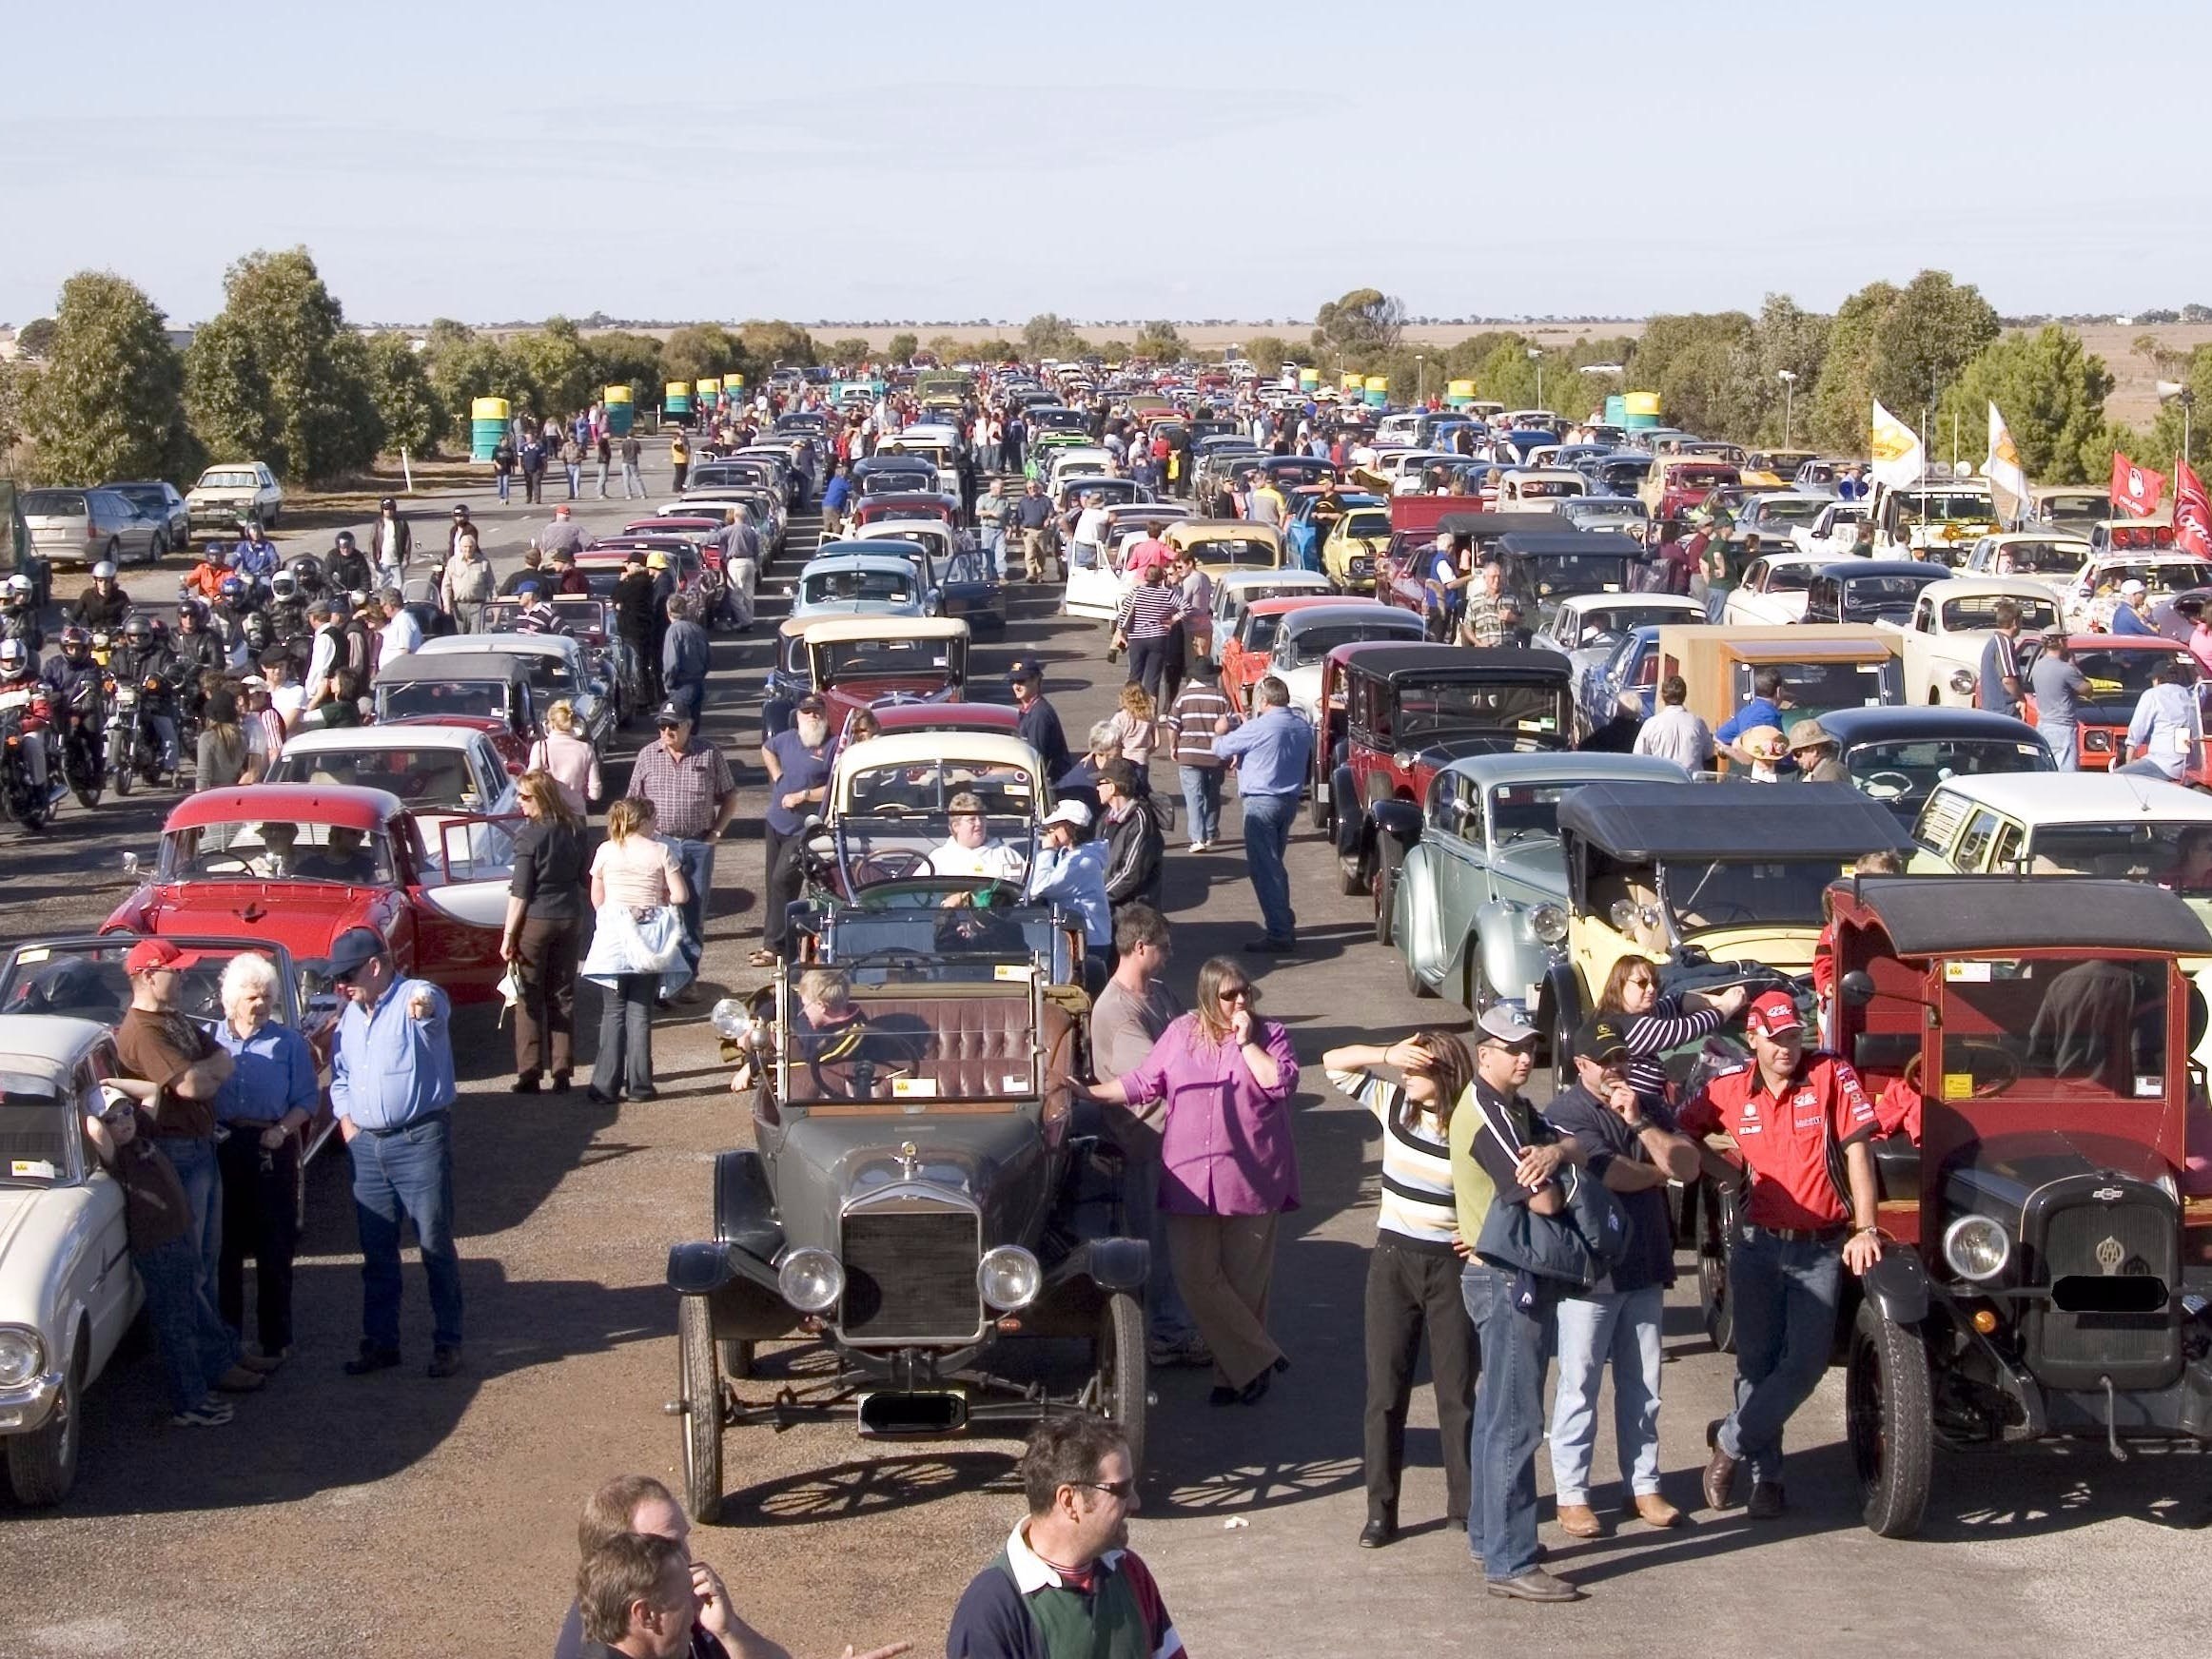 Image for Copper Coast Classic Cavalcade of Cars and Motorcycles, Kernewek Lowender